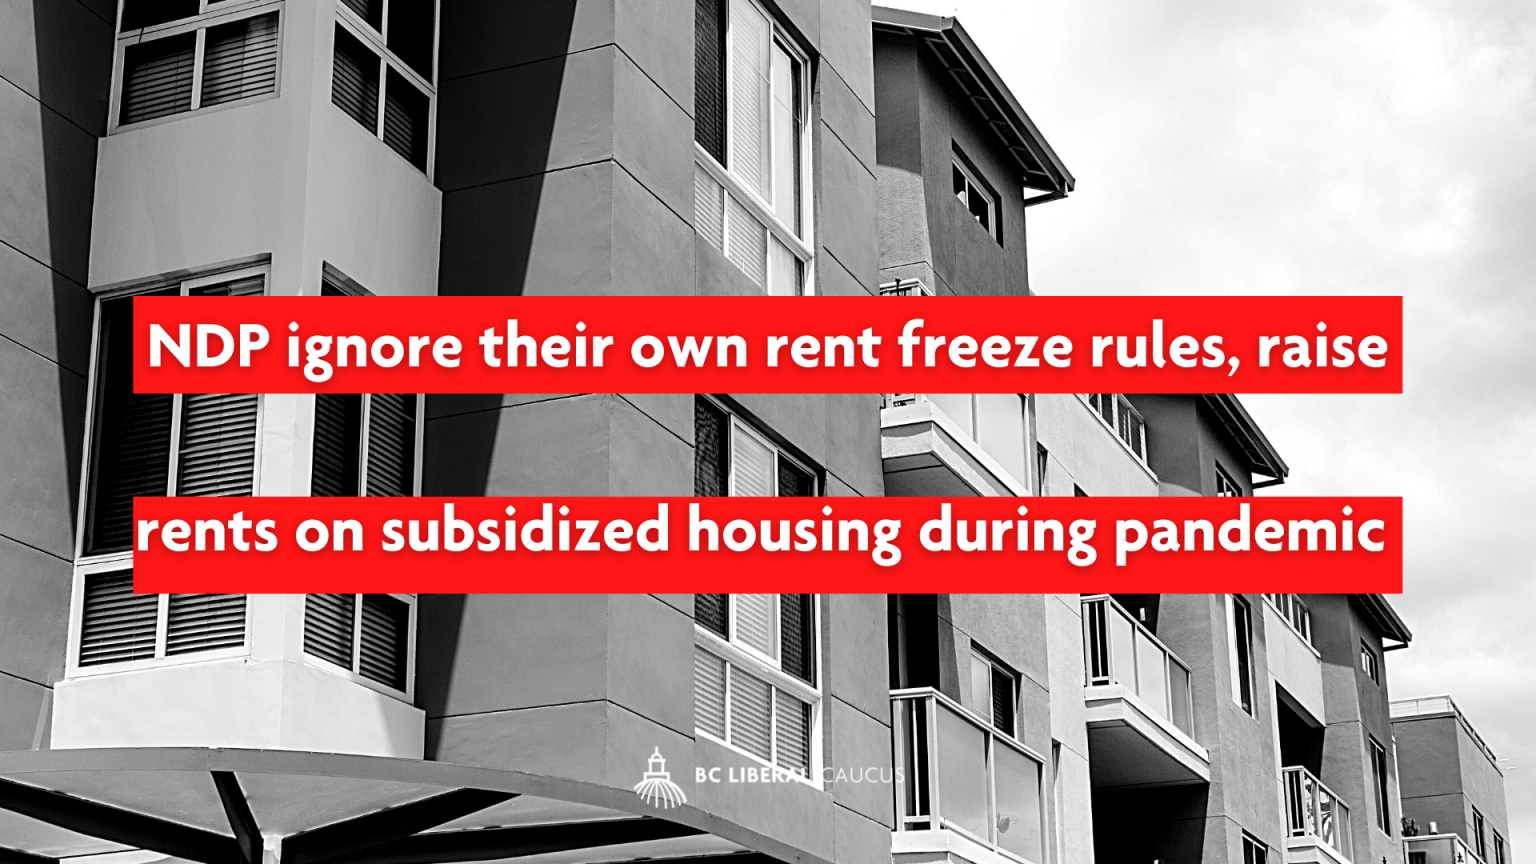 NDP ignore their own rent freeze rules, raise rents on subsidized housing during pandemic